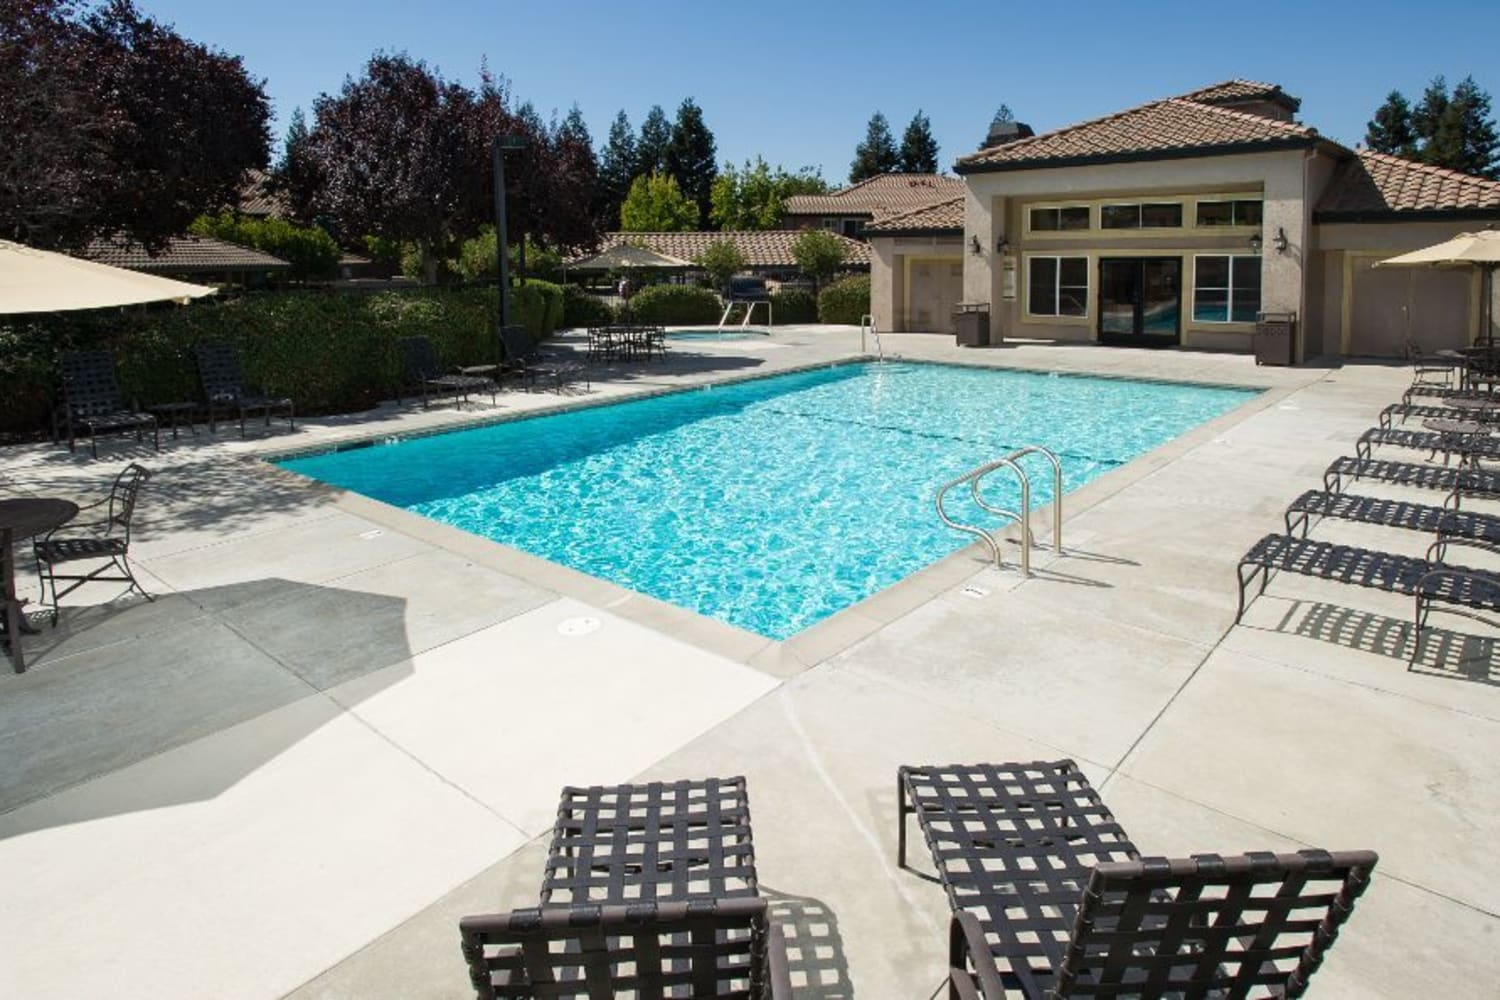 Enjoy relaxing by the pool at La Vina Apartments in Livermore, California